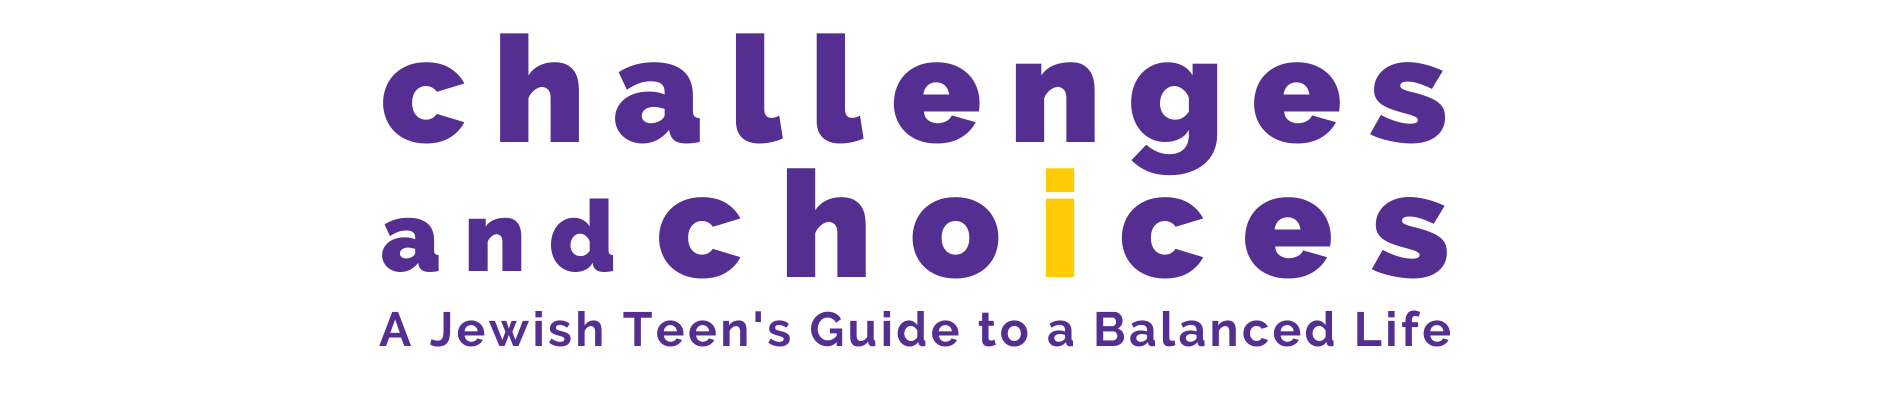 Copy of Challenges and choices letterhead (6)